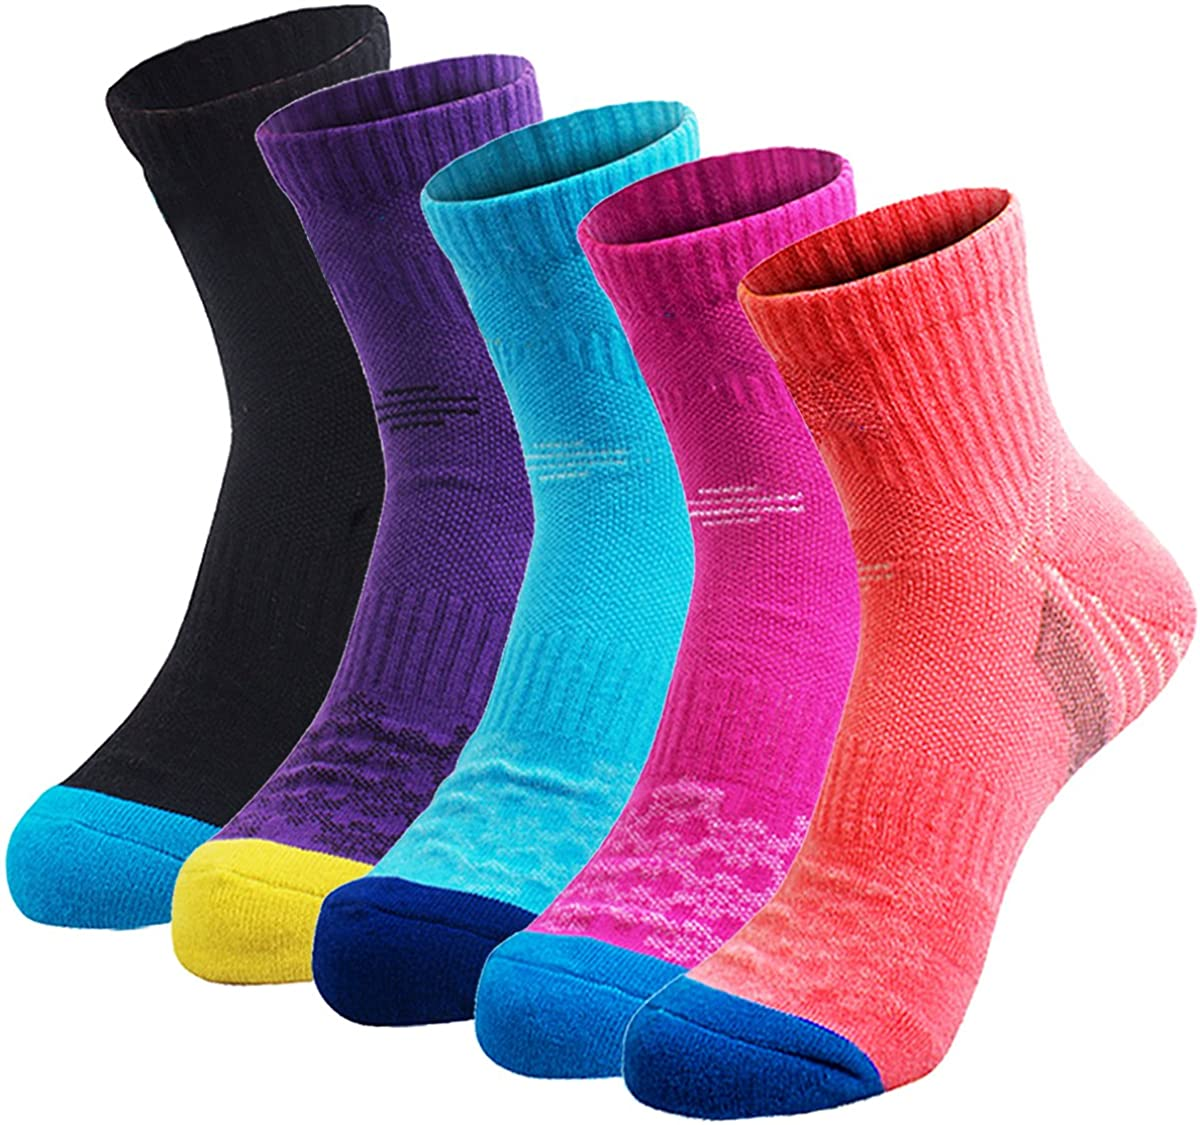 Veatree 5 Pairs Women's Hiking Socks, Multi Performance Mid-Cushion Trekking/Running/Camping Outdoor Crew Socks for Women